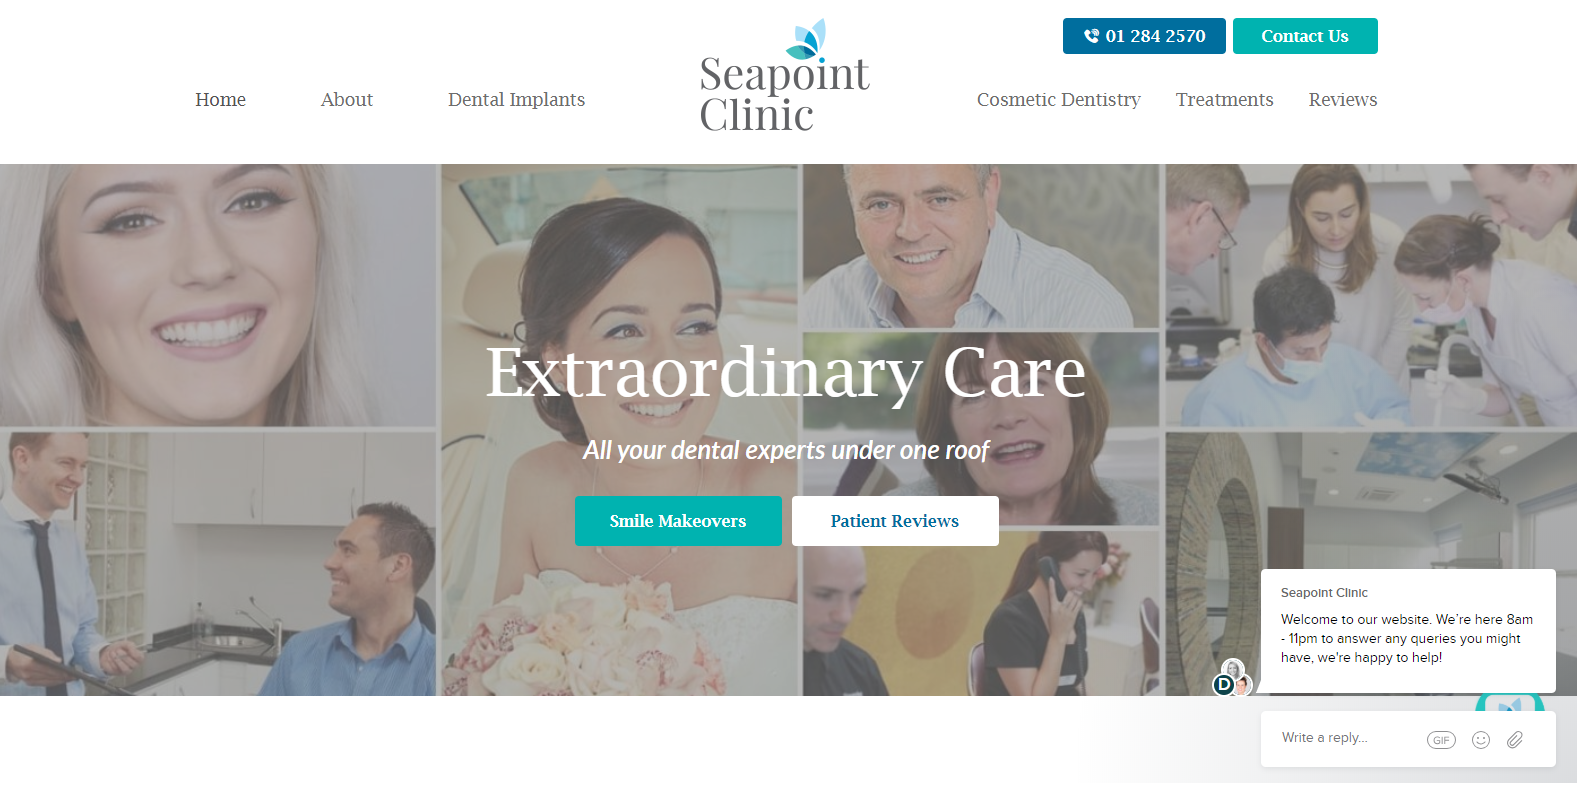 Seapoint Clinic